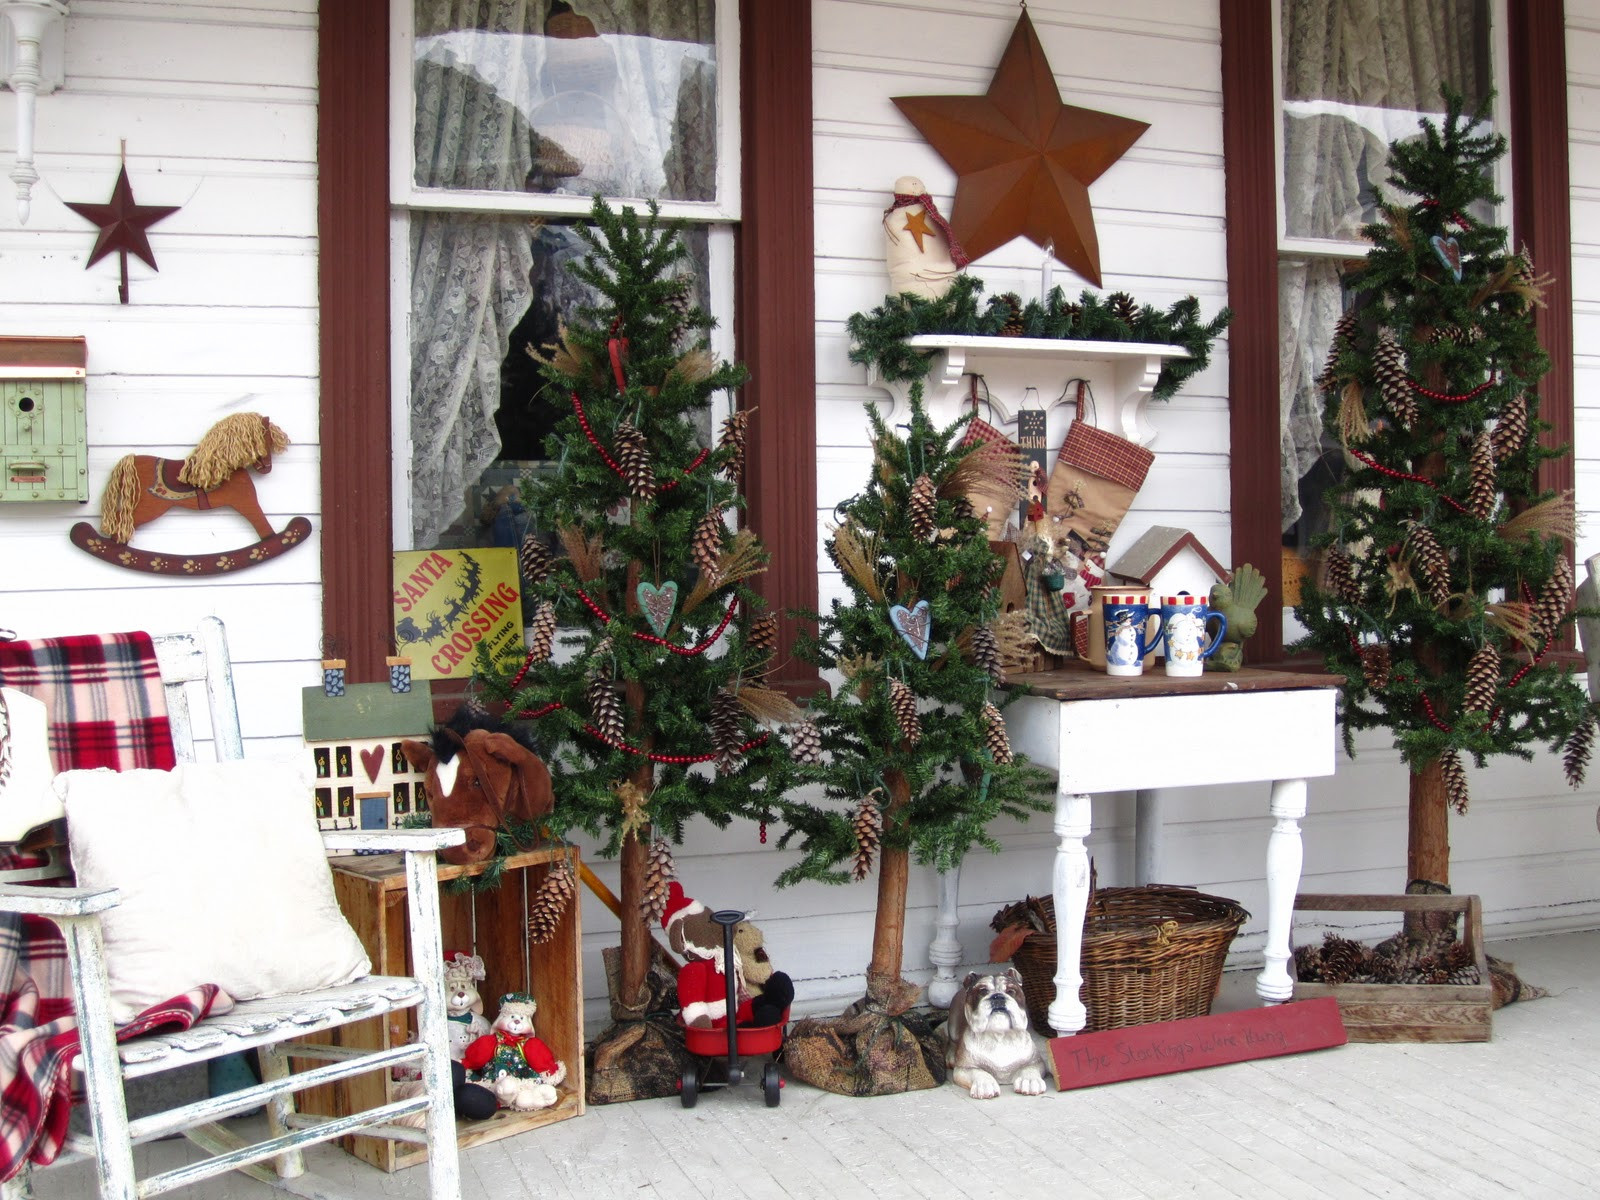 Decorating Porch For Christmas  SuesJunkTreasures Rustic Country Christmas on my front